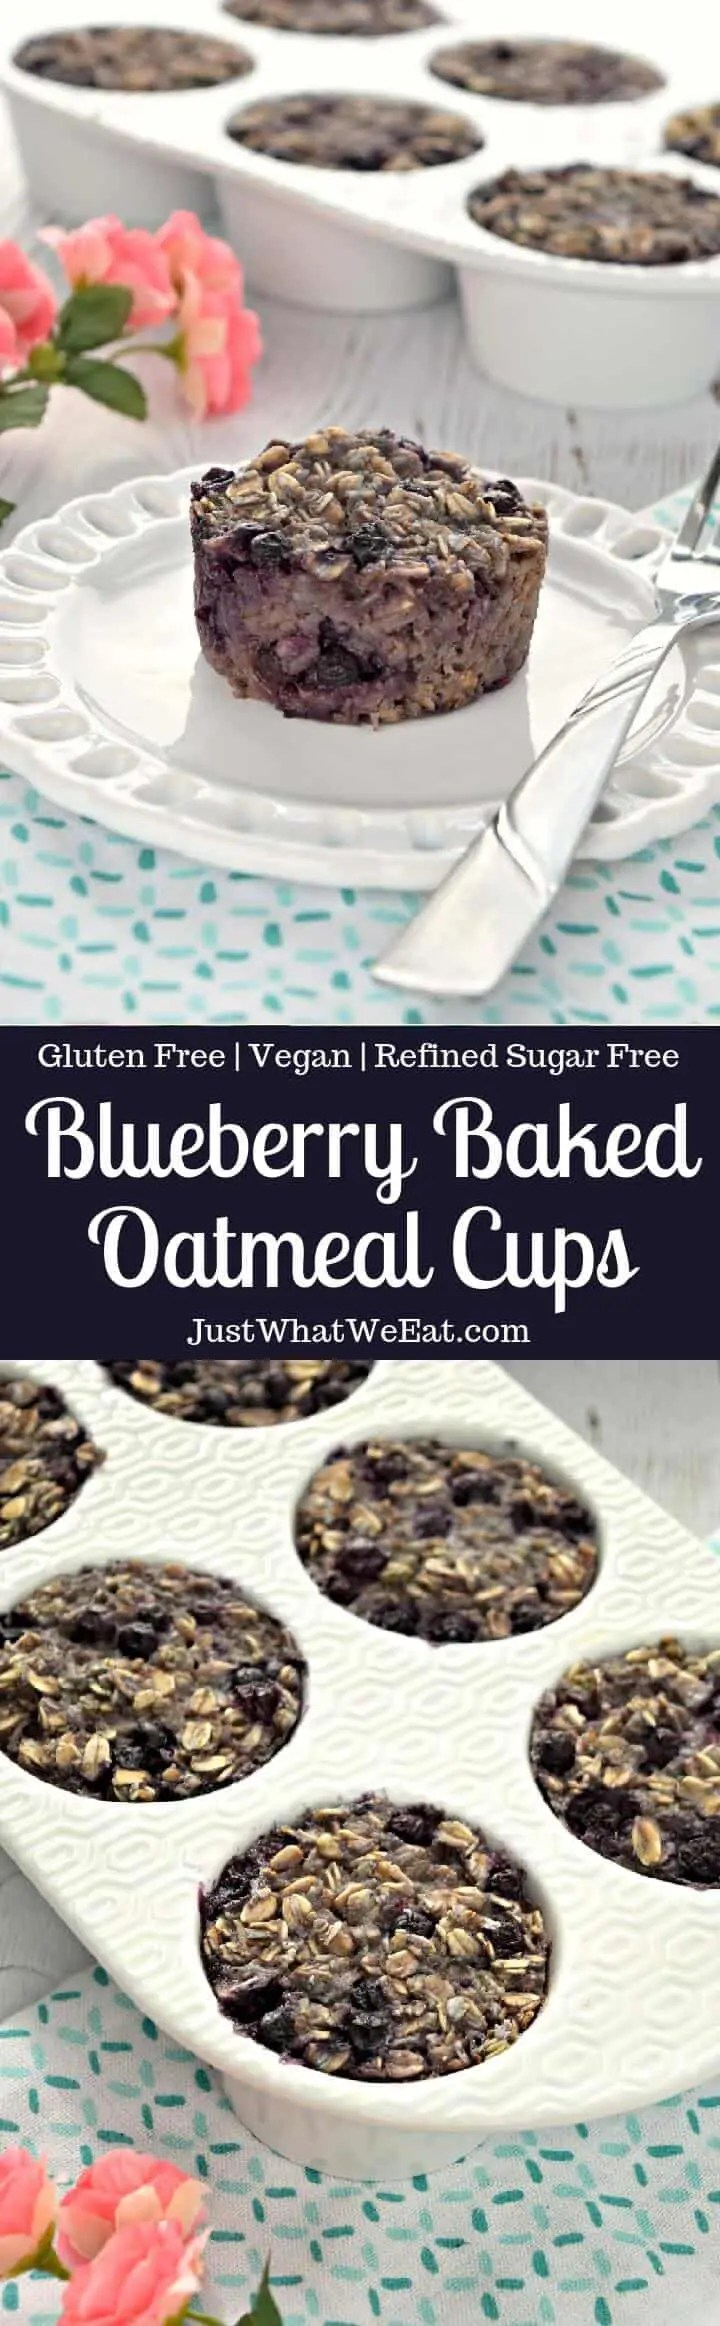 Blueberry Baked Oatmeal Cups - Gluten Free, Vegan, and Refined Sugar Free